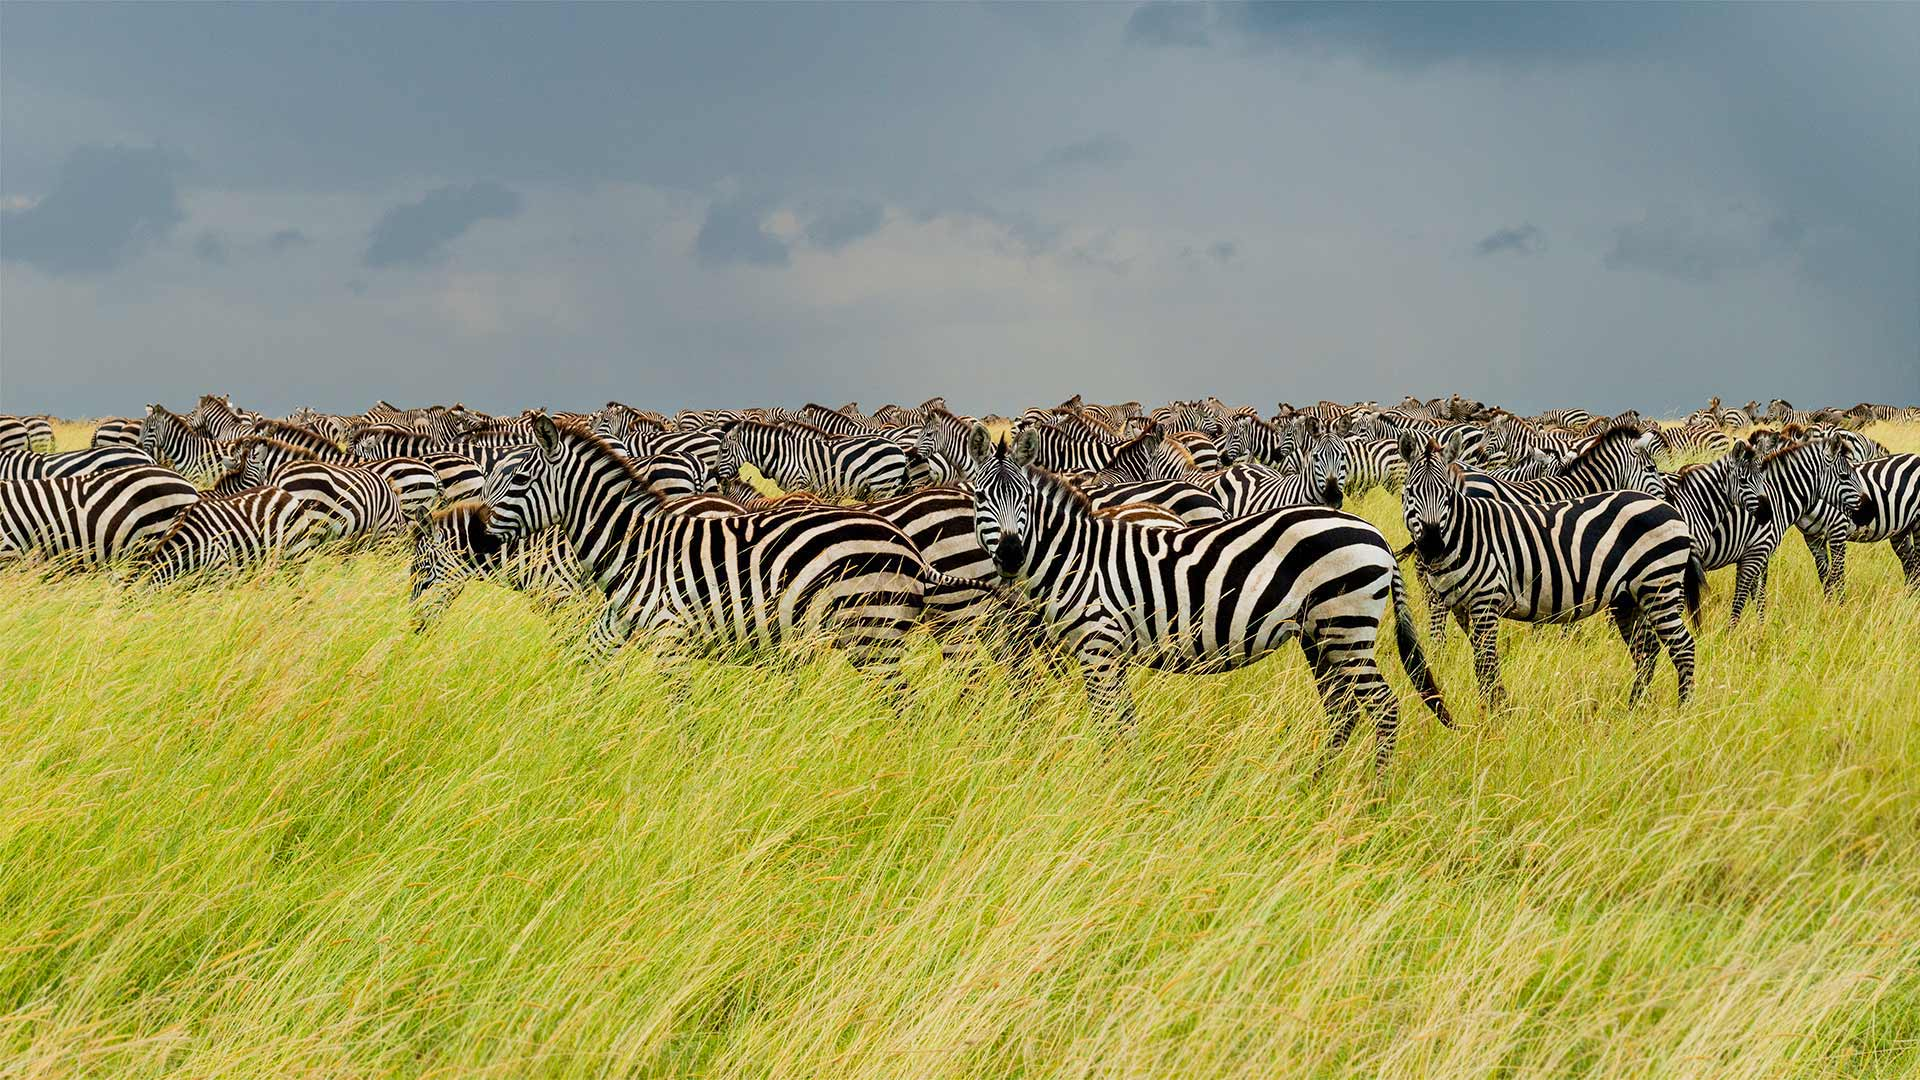 Zebras in Serengeti National Park, Tanzania (© pchoui/Getty Images)(Bing United States)